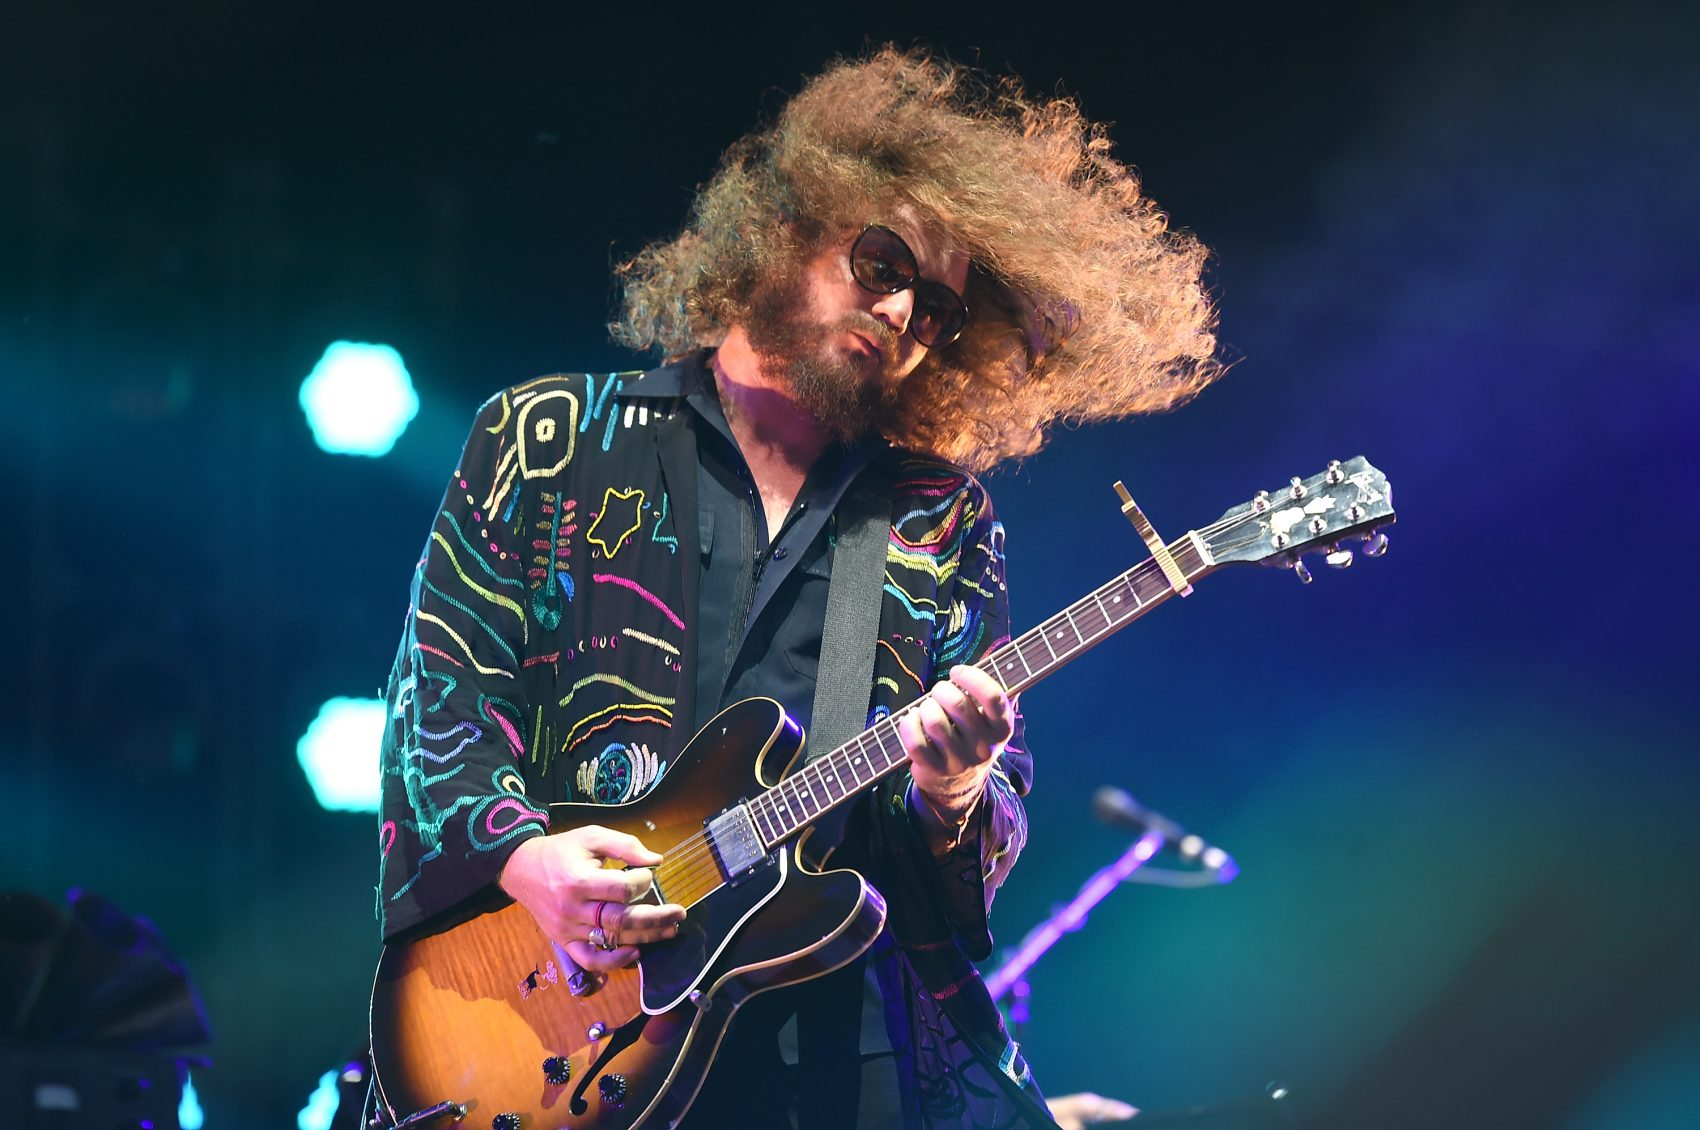 Musician Jim James performs during the 2015 Bonnaroo Music & Arts Festival in June 2015 in Manchester, Tenn. (Jason Merritt/Getty Images)